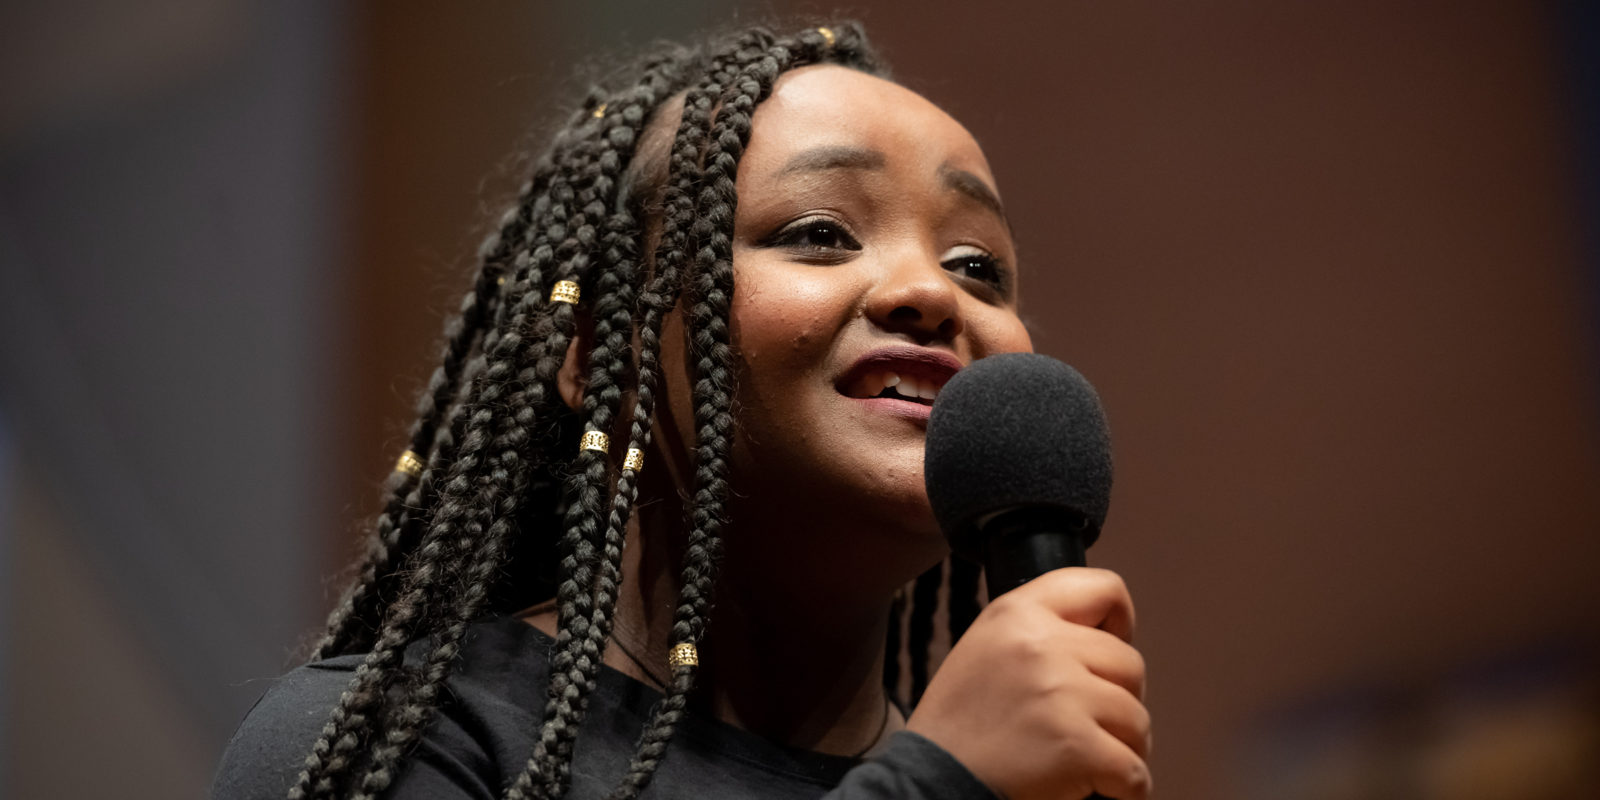 African American young woman singing